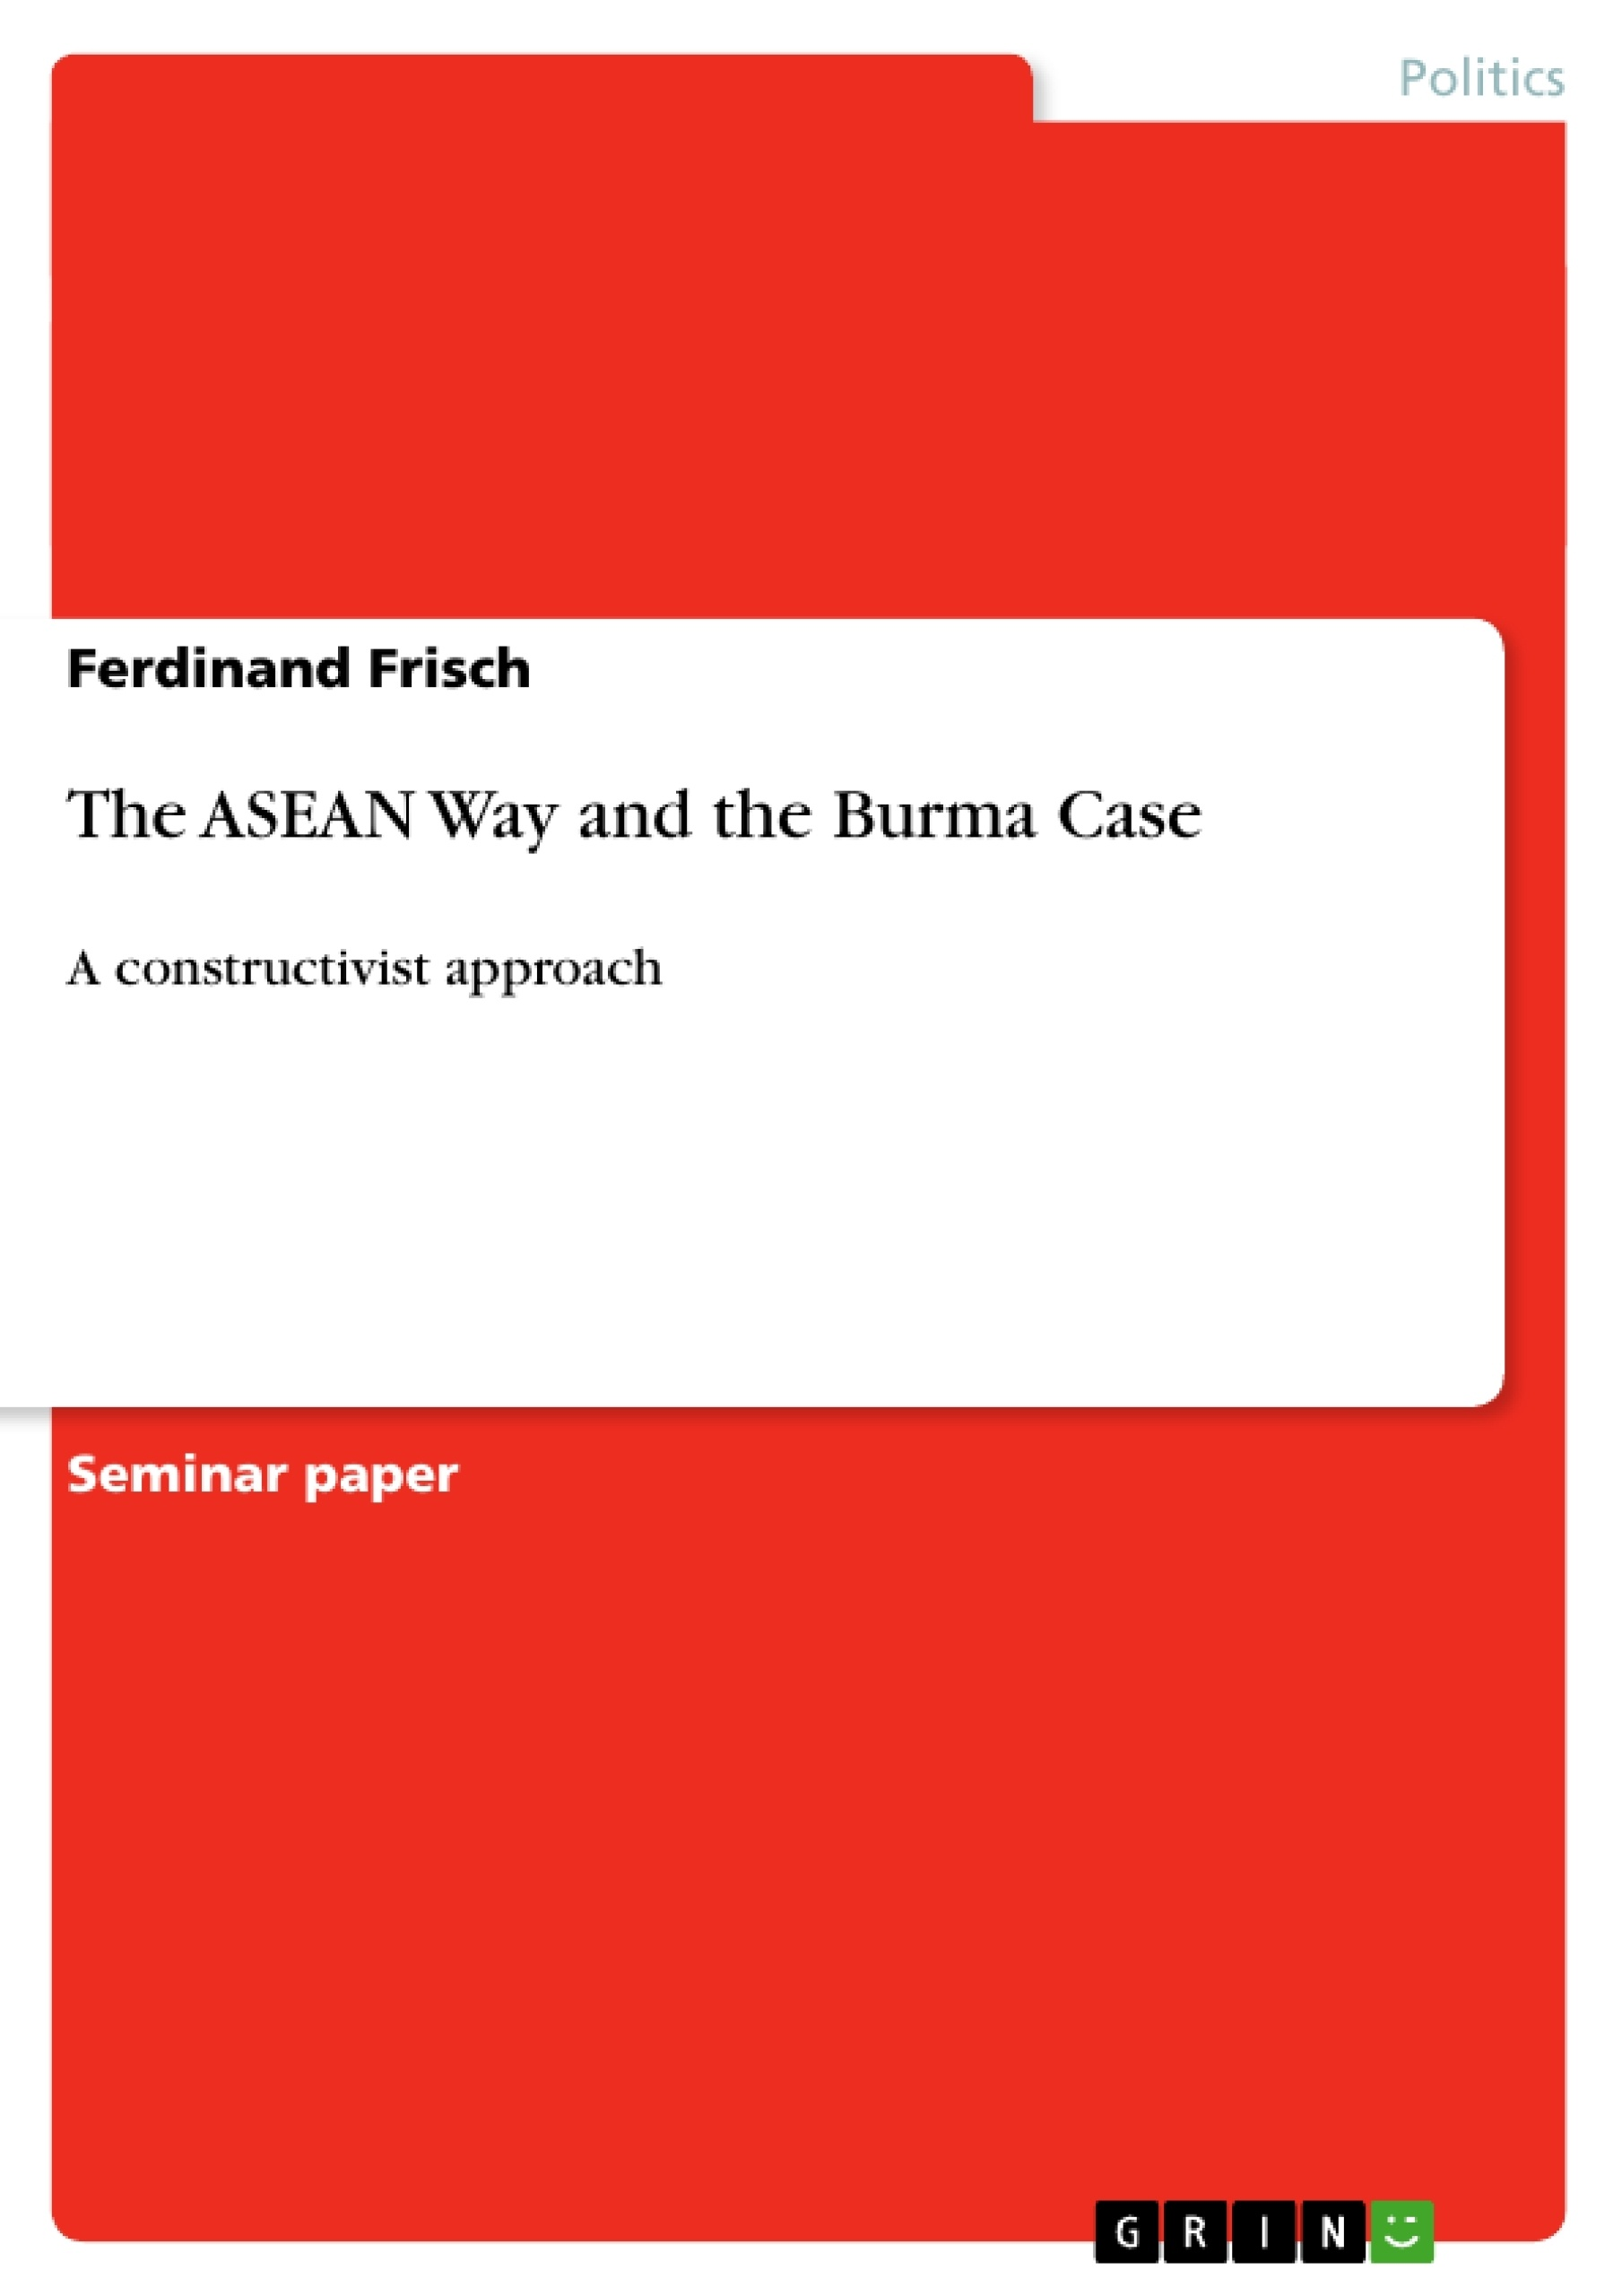 Title: The ASEAN Way and the Burma Case